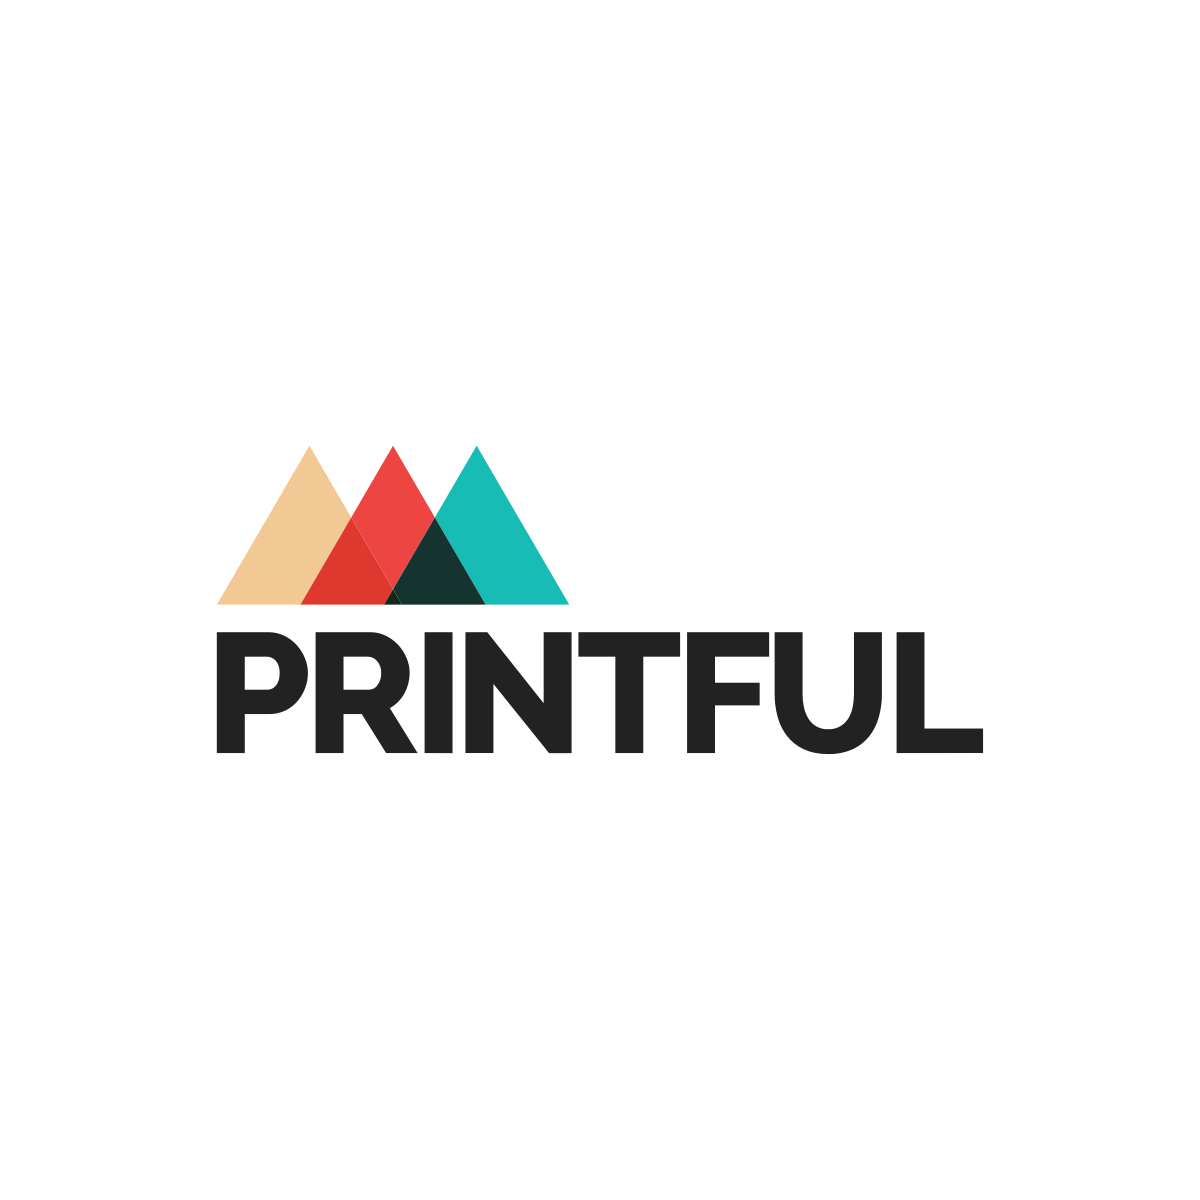 Printful Company Profile